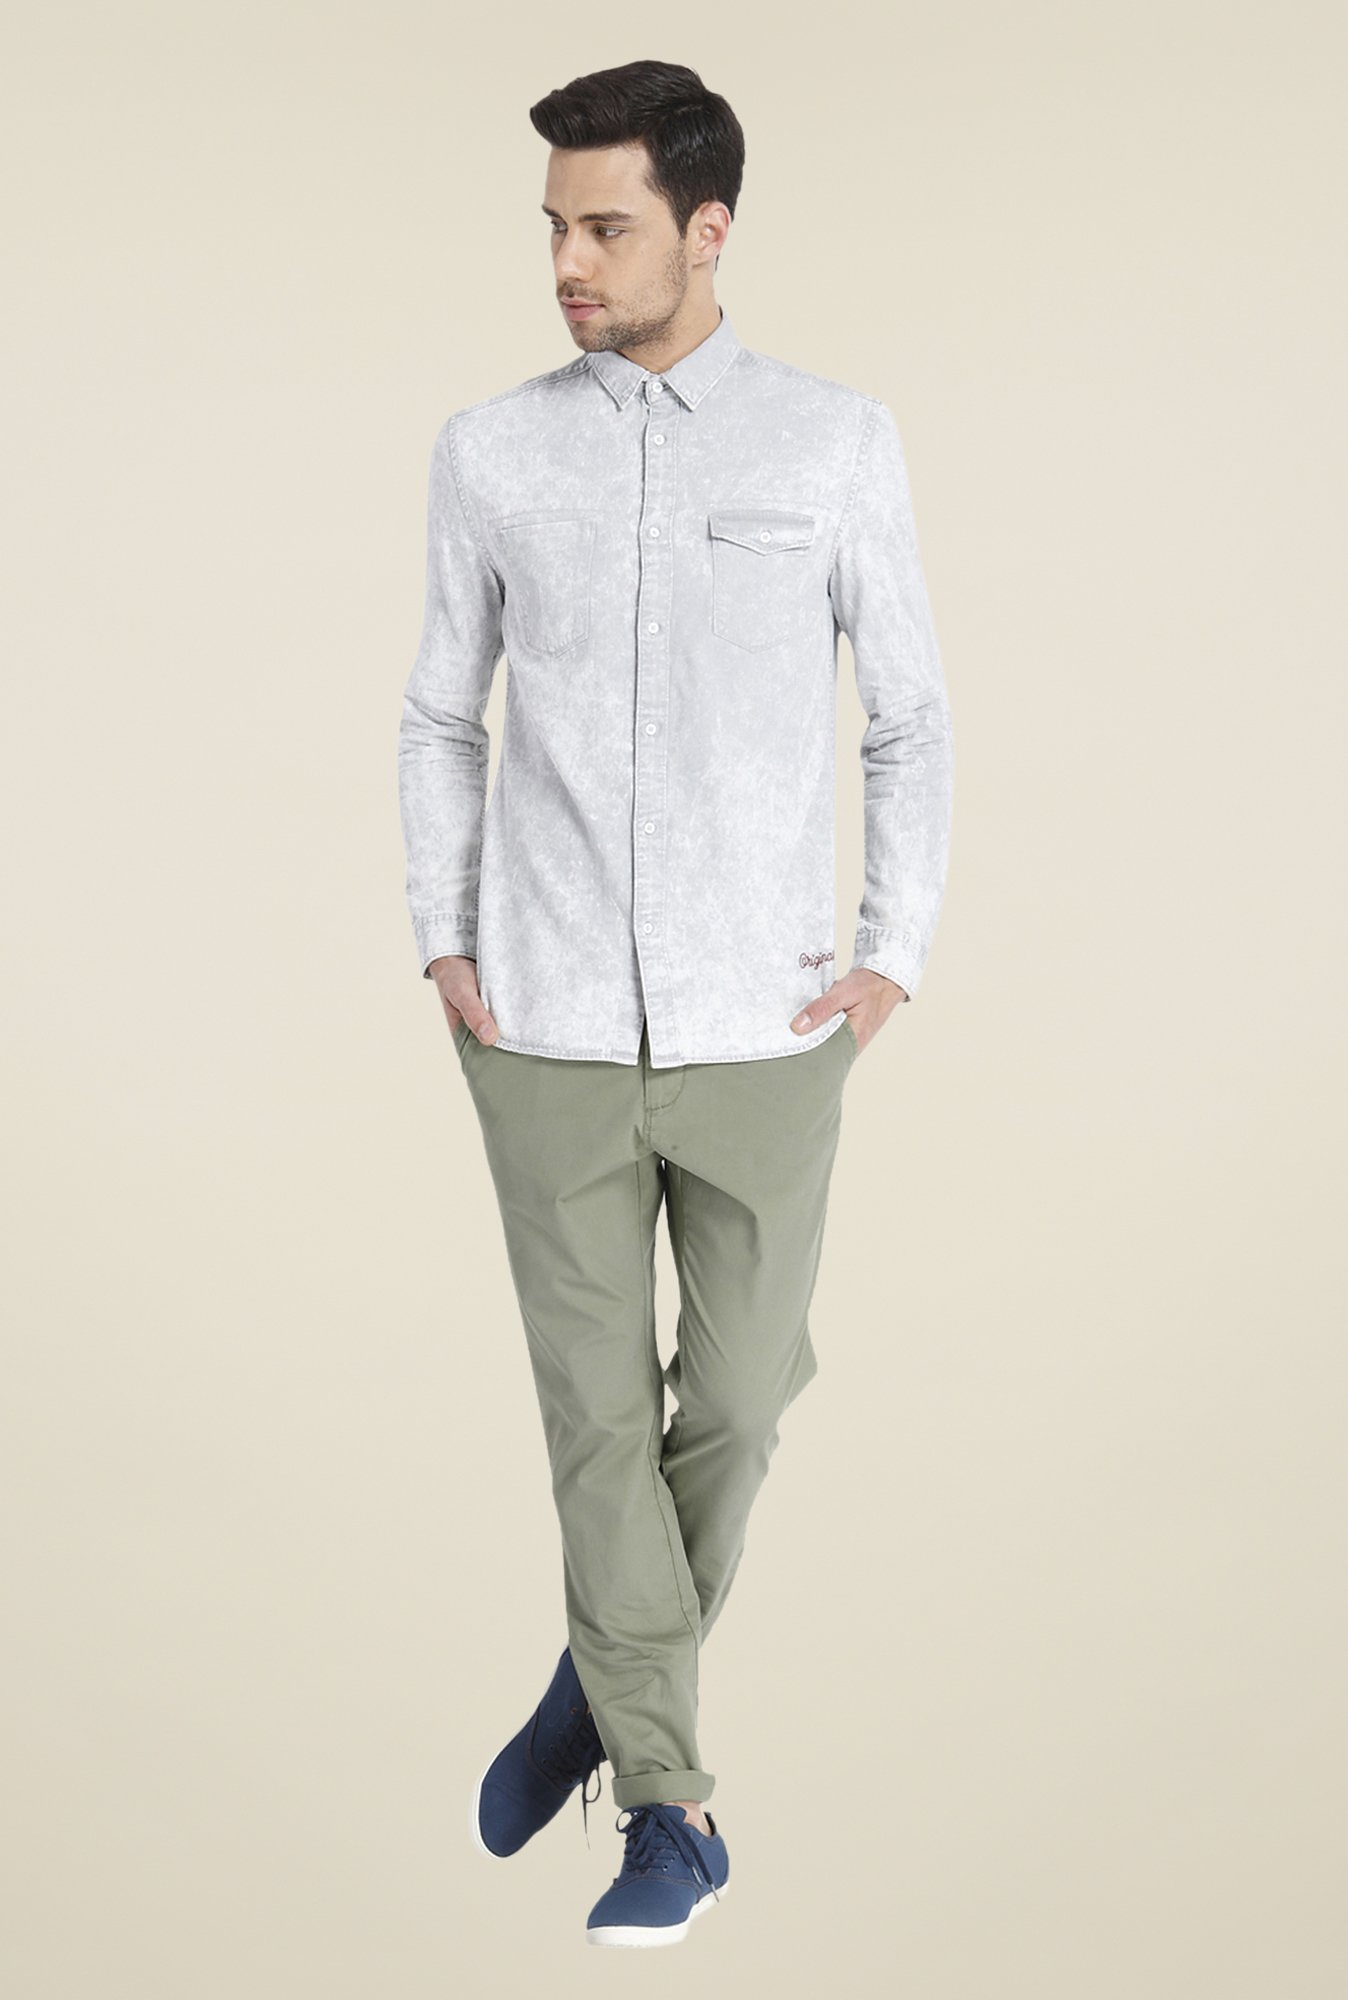 Jack & Jones Grey Acid Washed Shirt